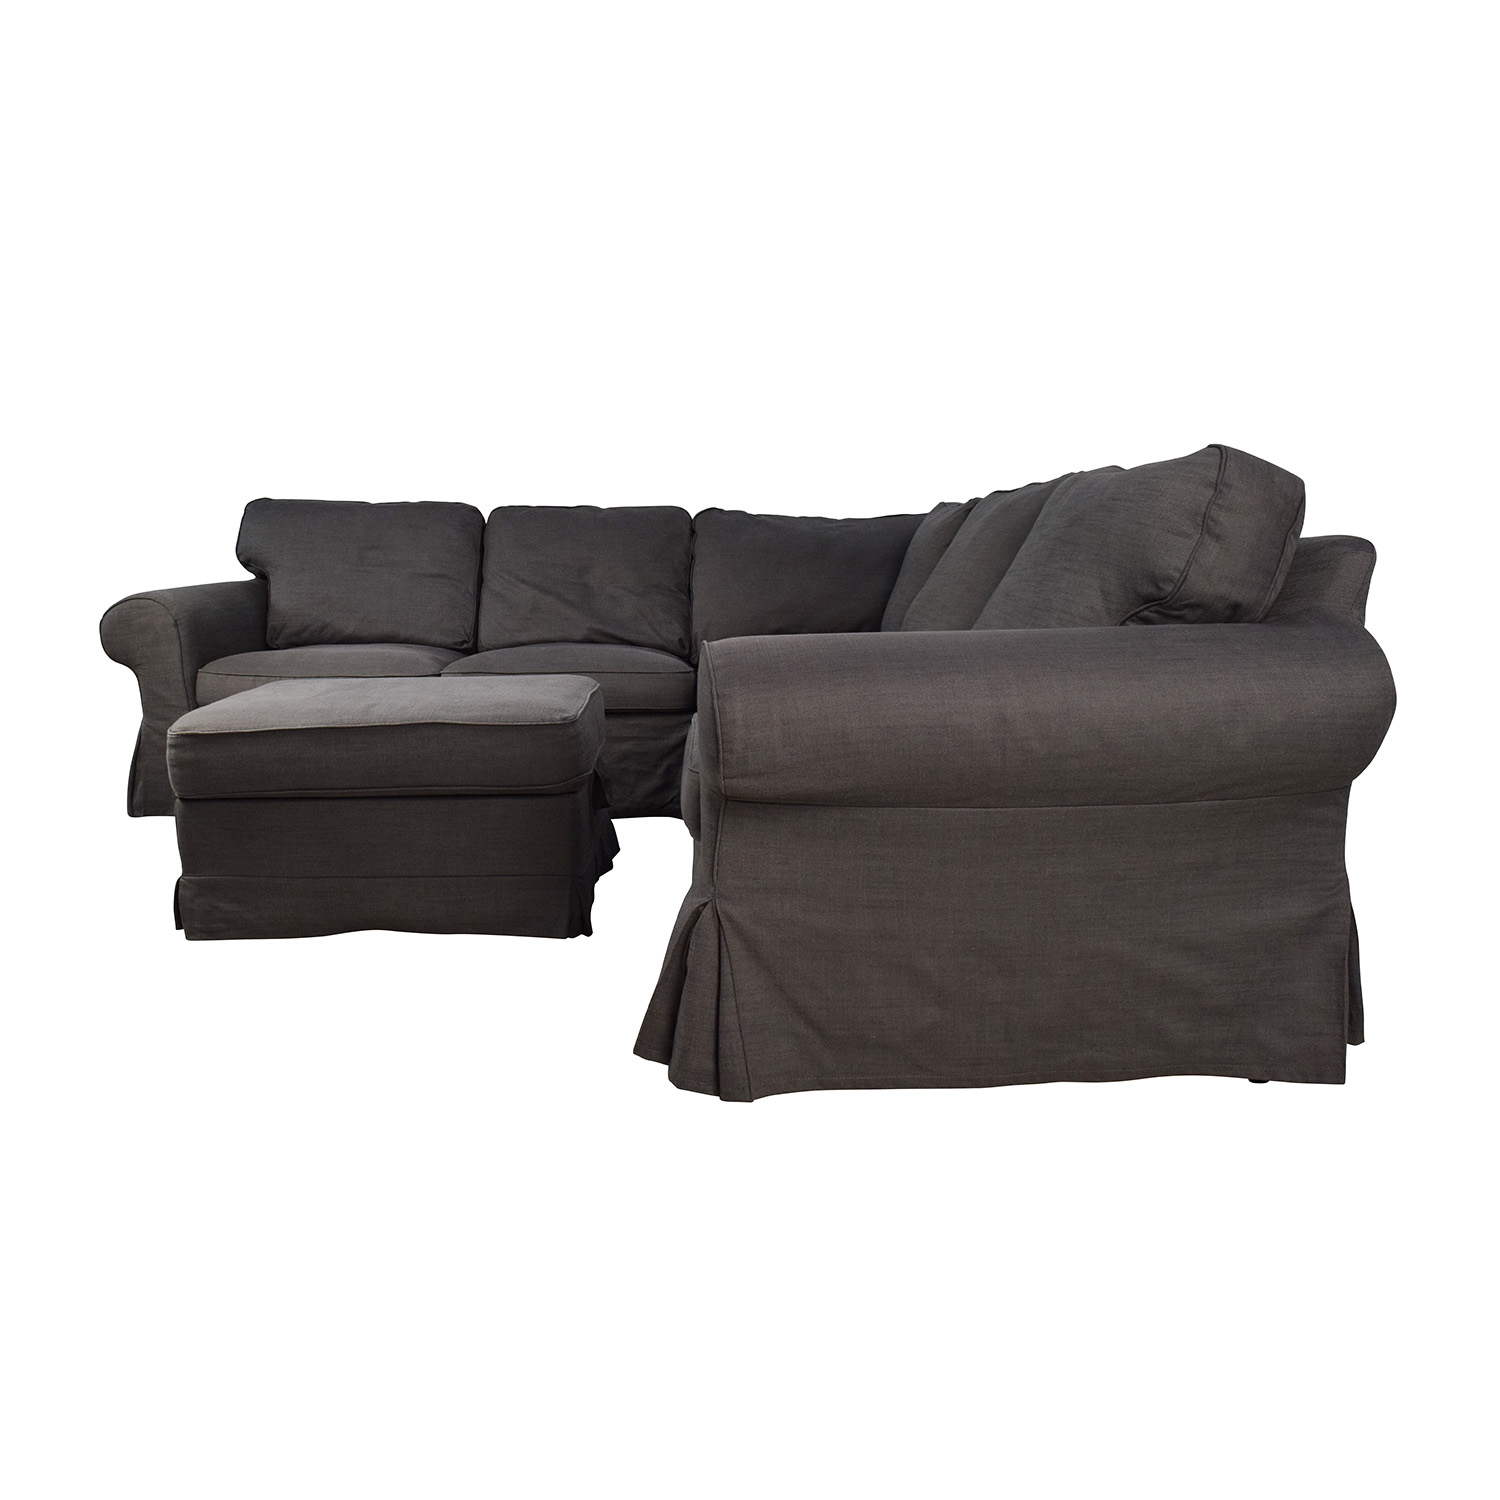 IKEA IKEA EKTORP Gray Corner Sectional with Ottoman coupon